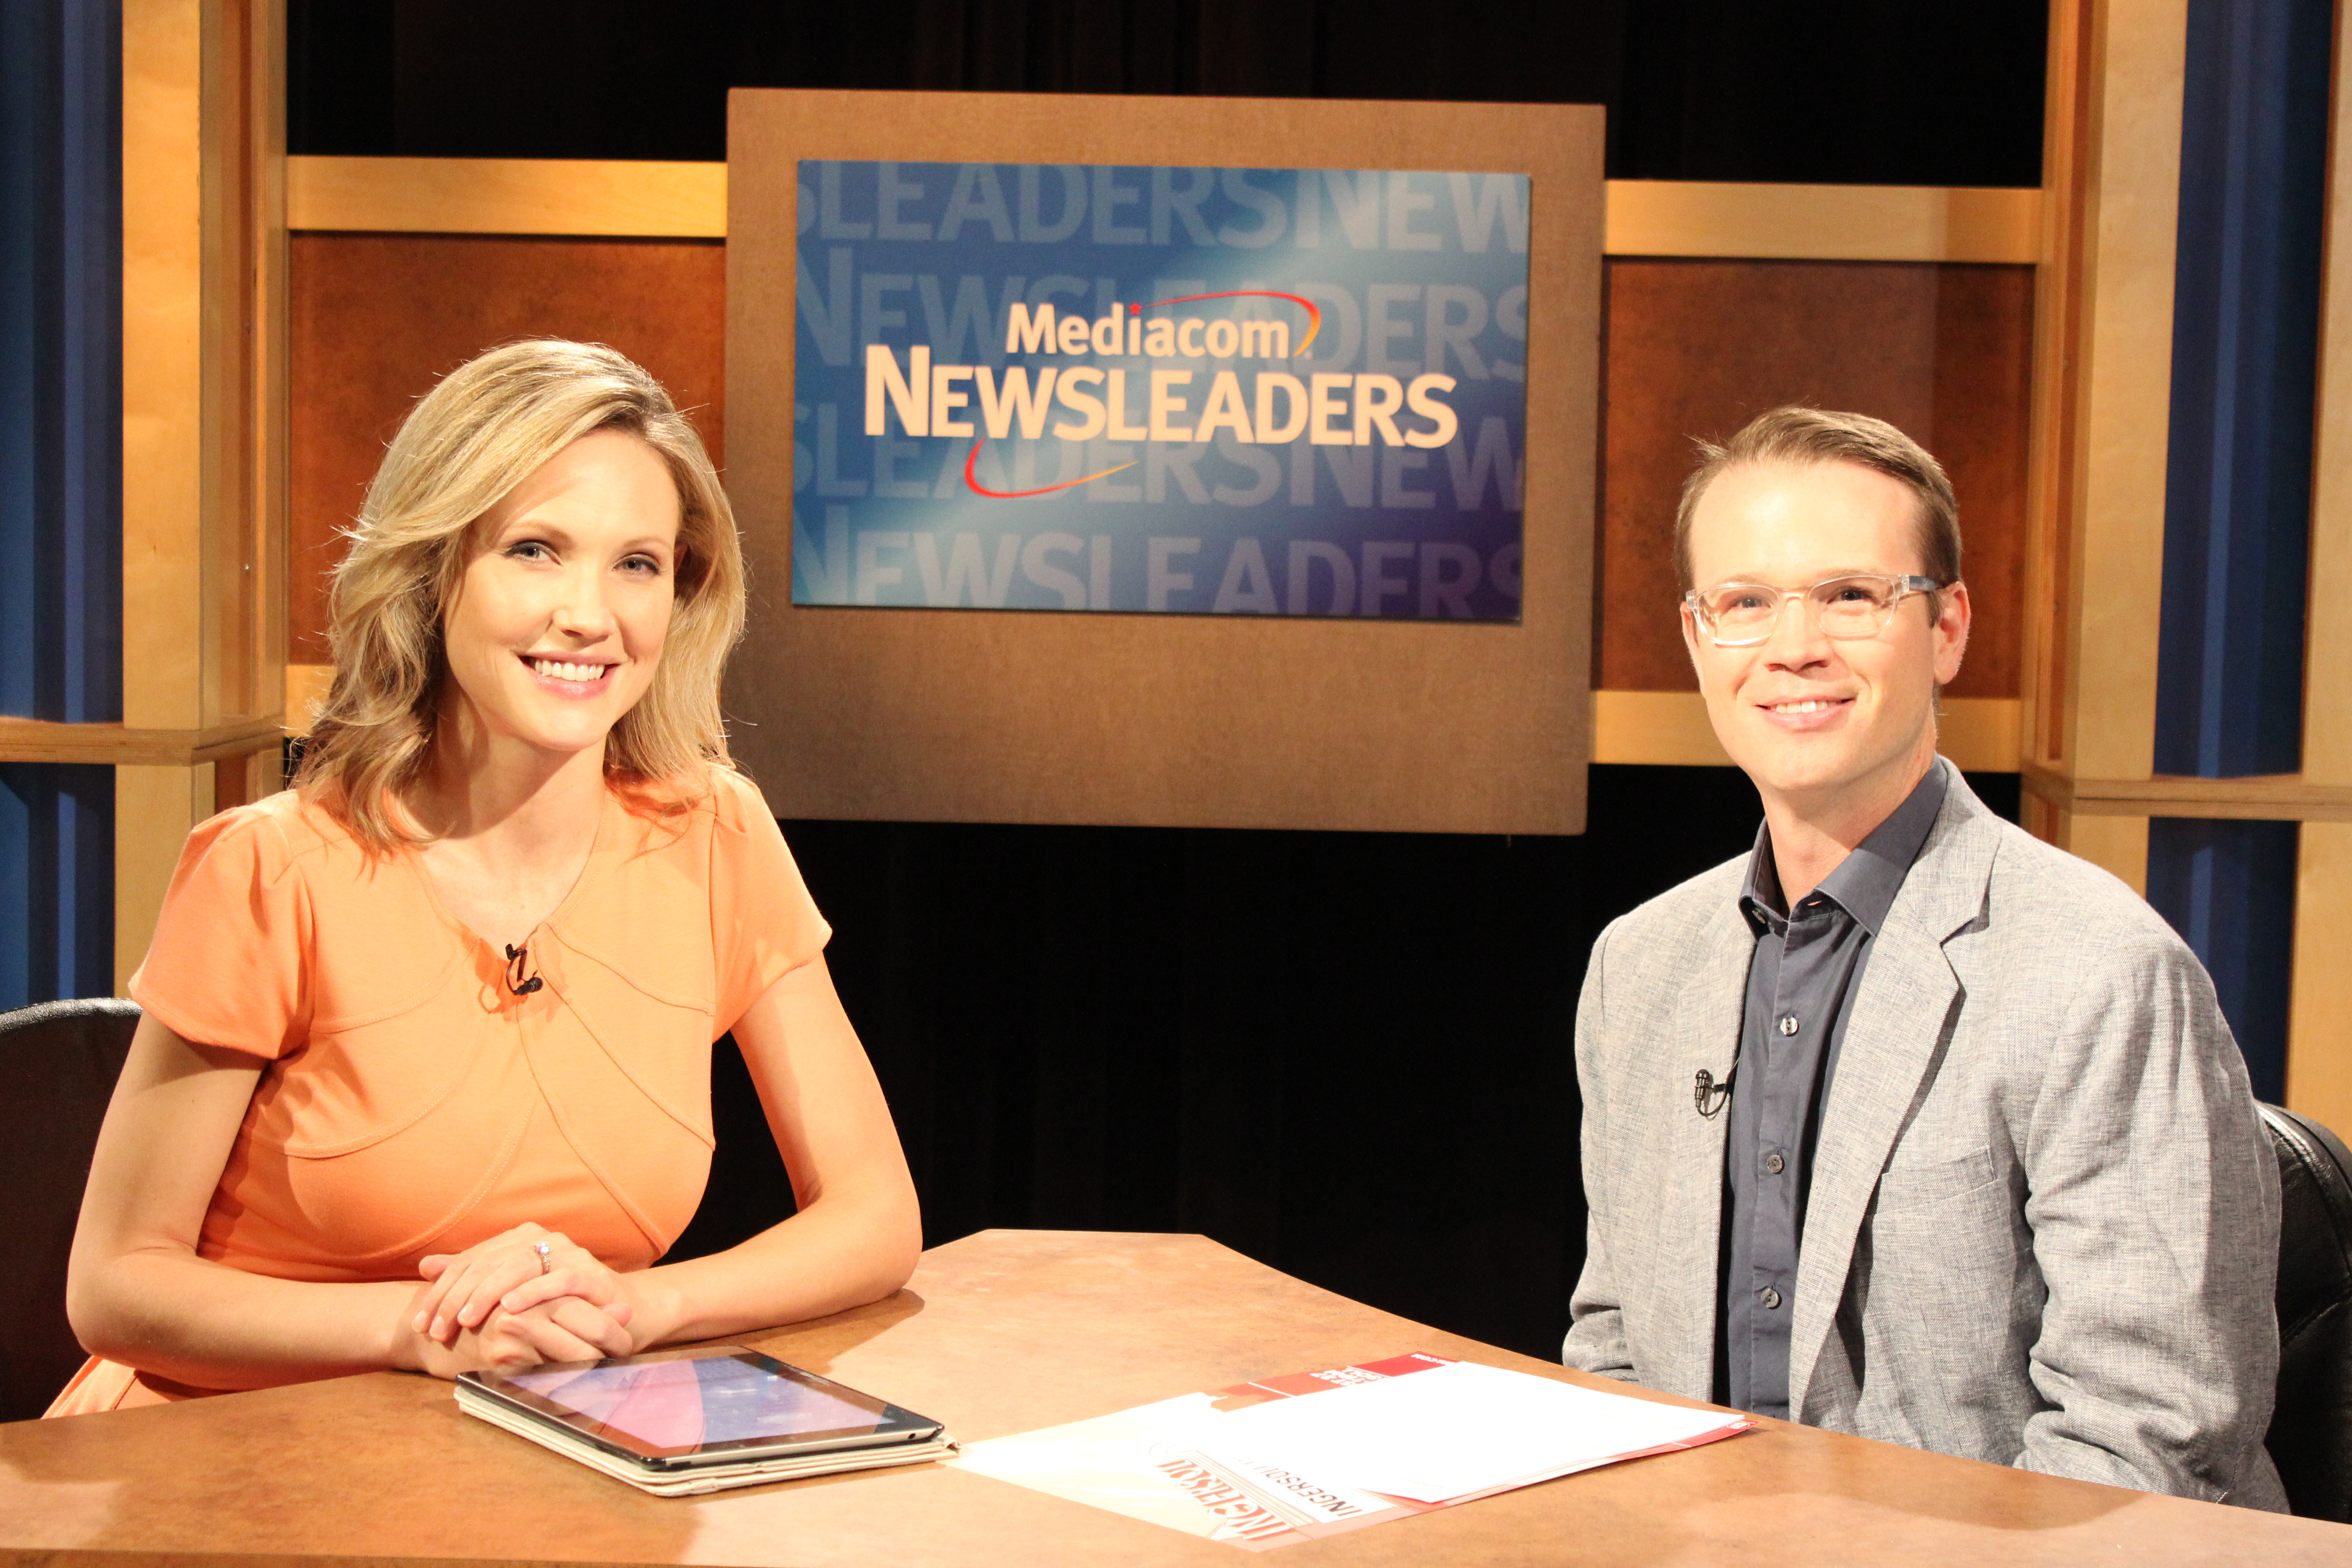 Ingersoll LIVE and Avenues Preview on Mediacom Newsleaders